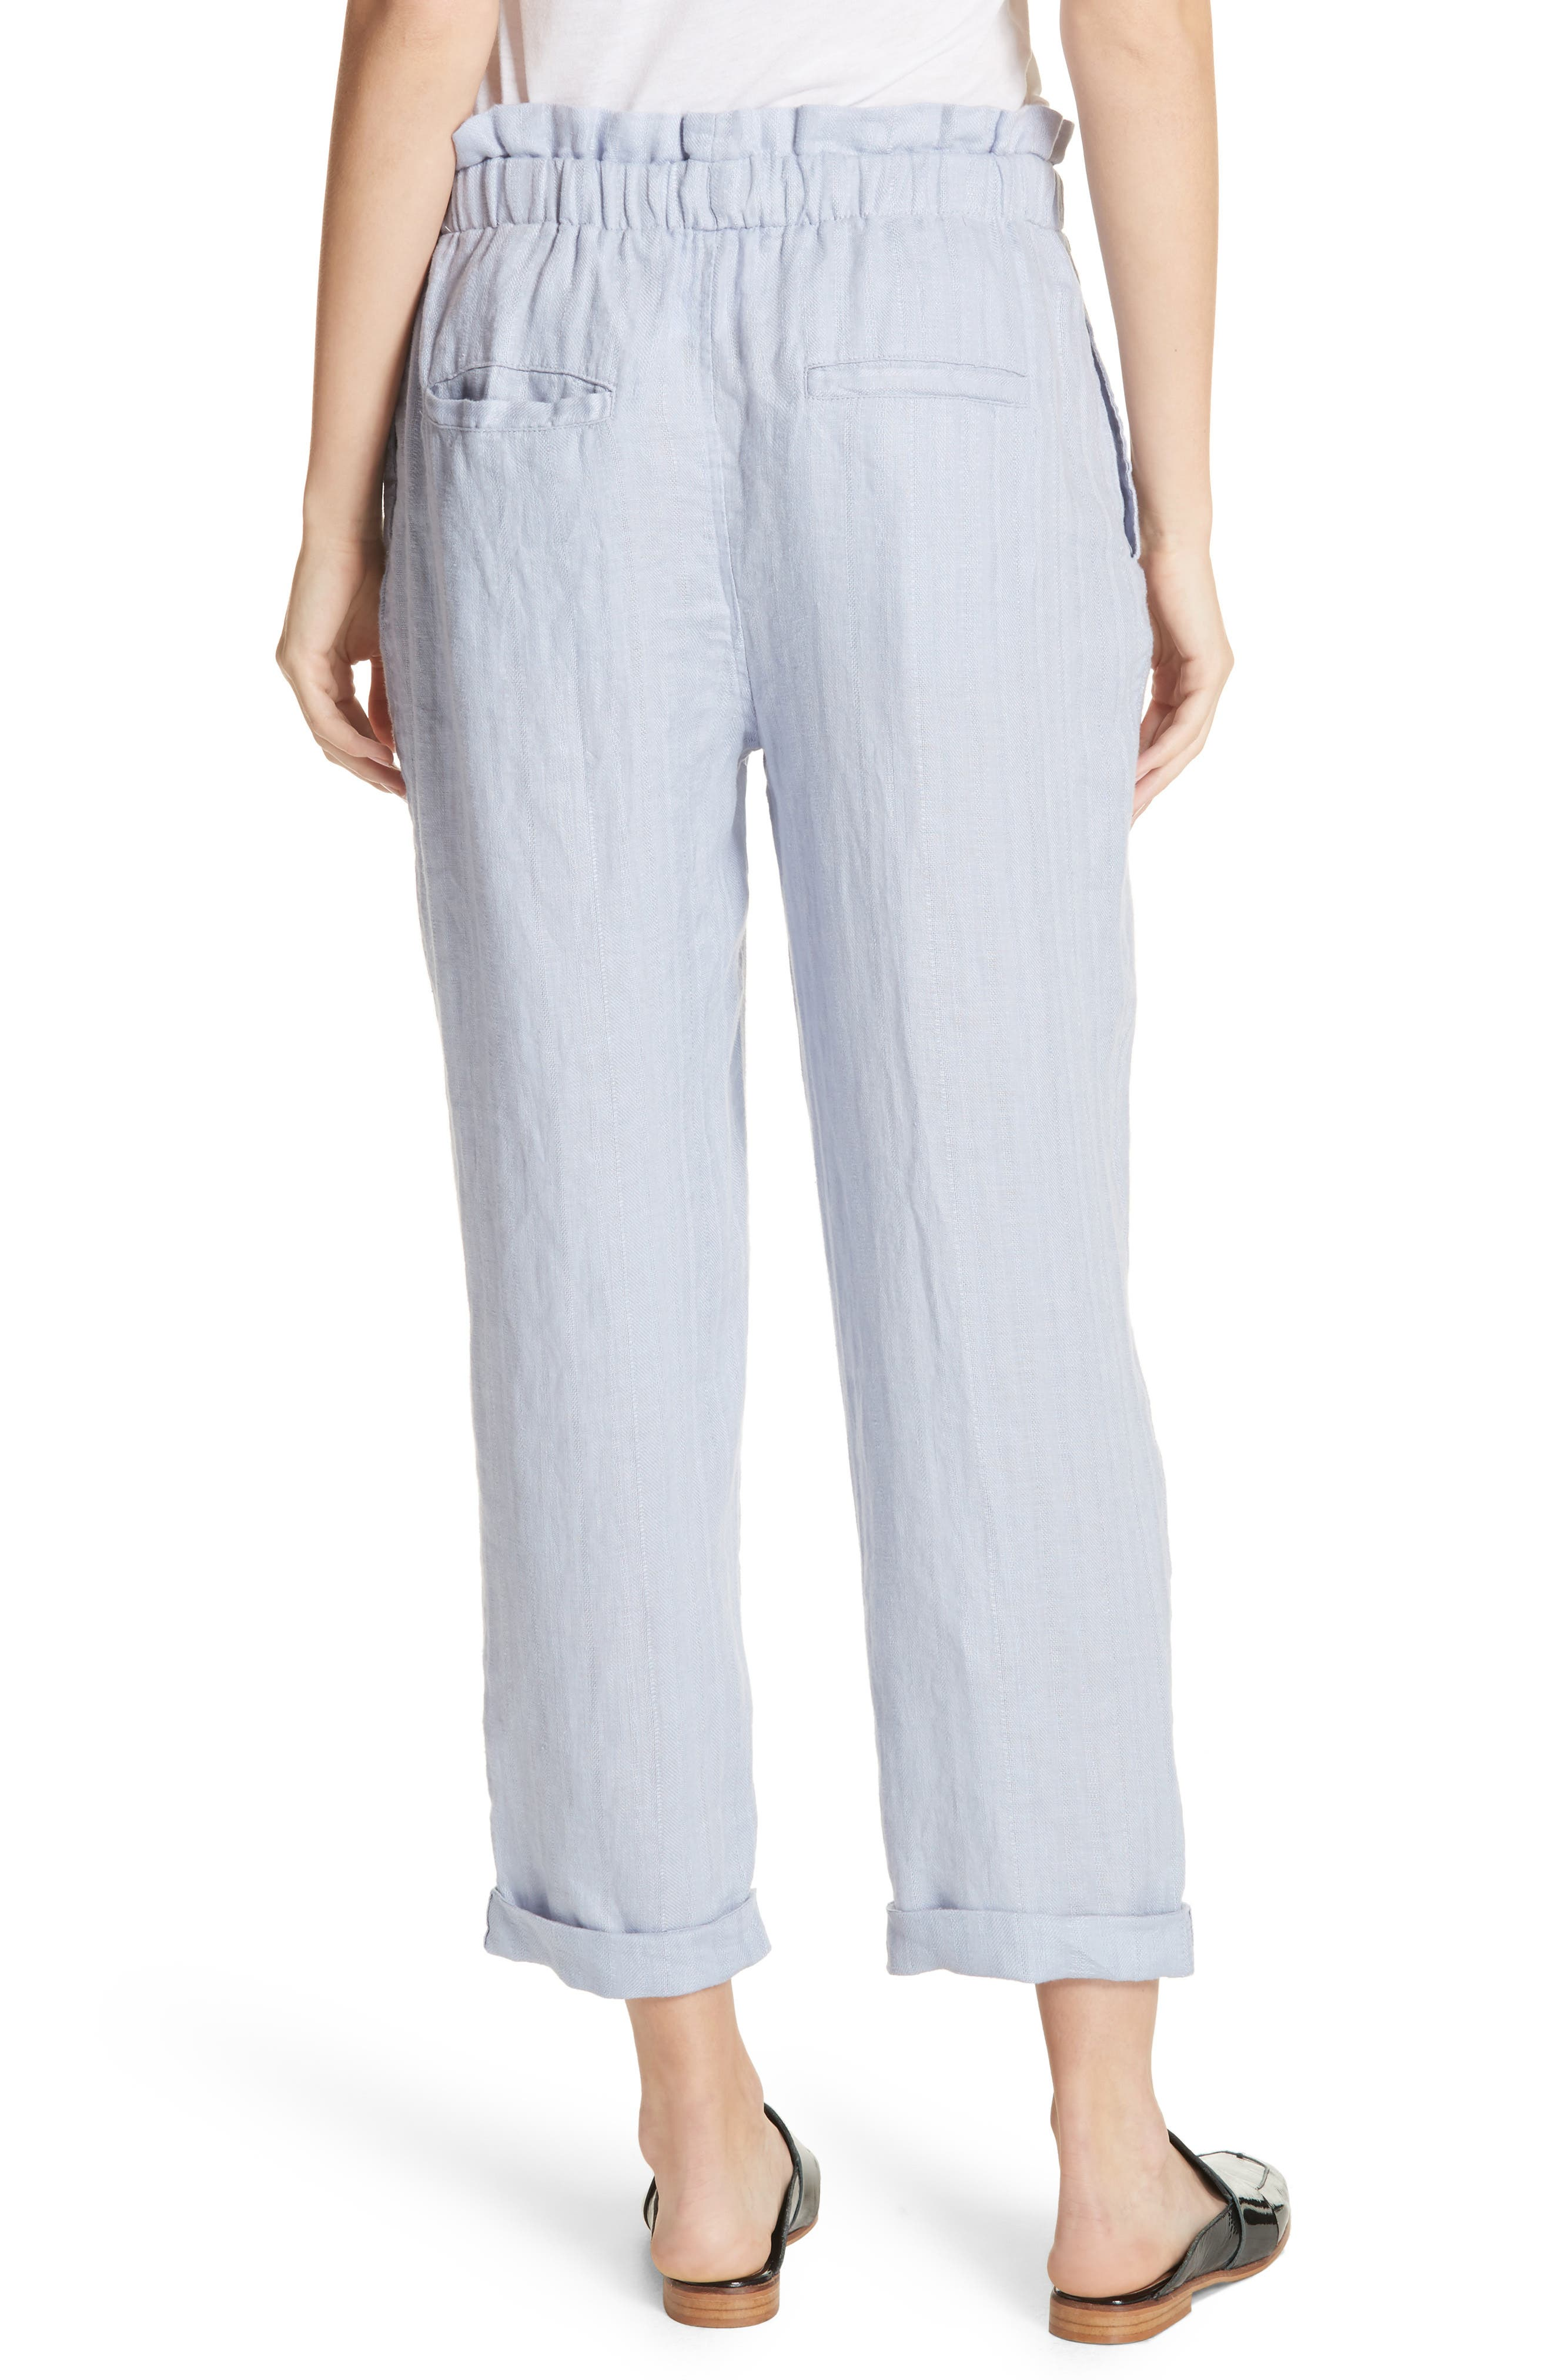 Only over You Linen Trousers,                             Alternate thumbnail 2, color,                             Pearl